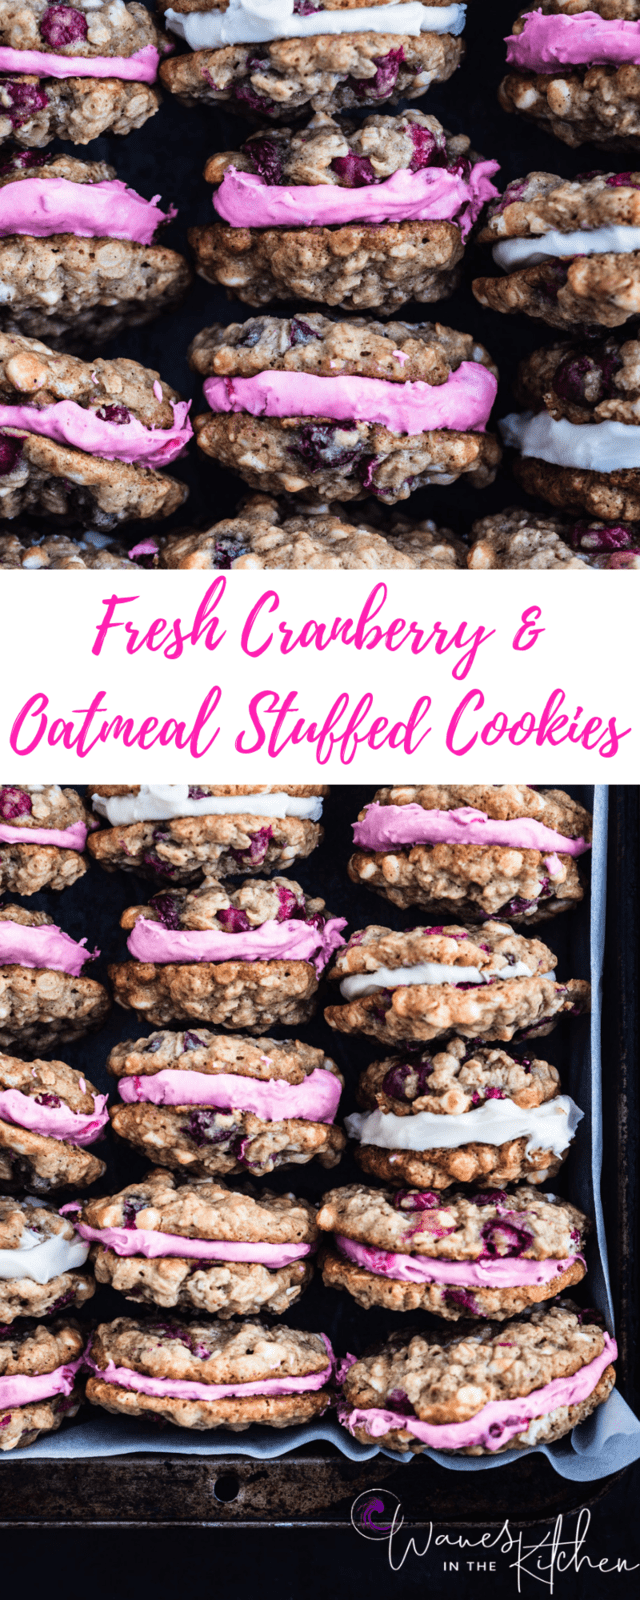 Fresh Cranberry, White Chocolate & Oatmeal cookies, stuffed with either cranberry cream cheese or vanilla mascarpone, staked up.